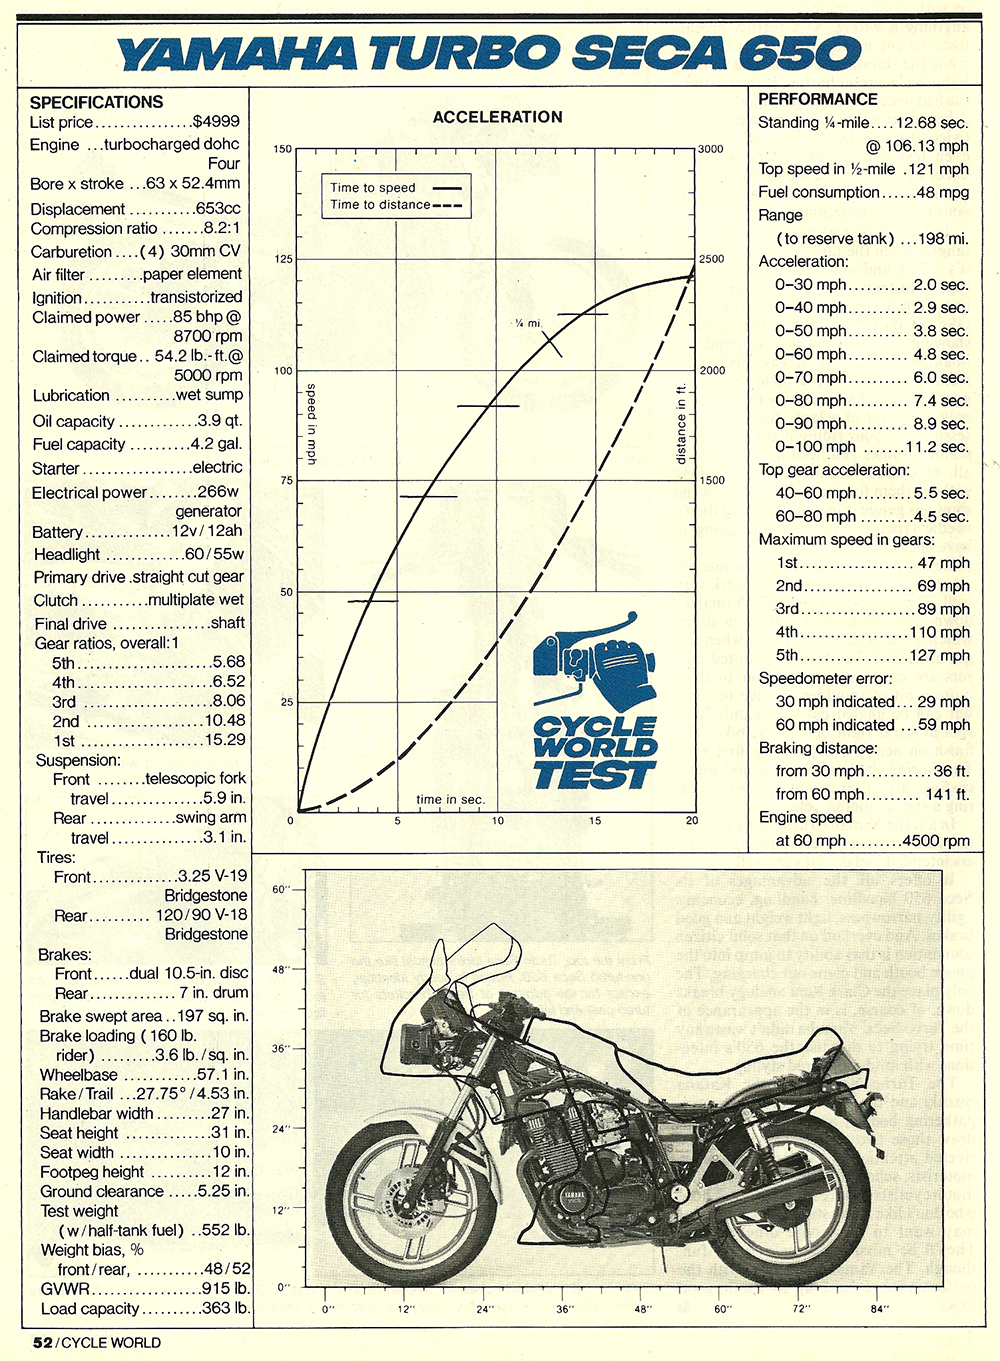 1982 Yamaha Turbo Seca 650 road test 09.jpg